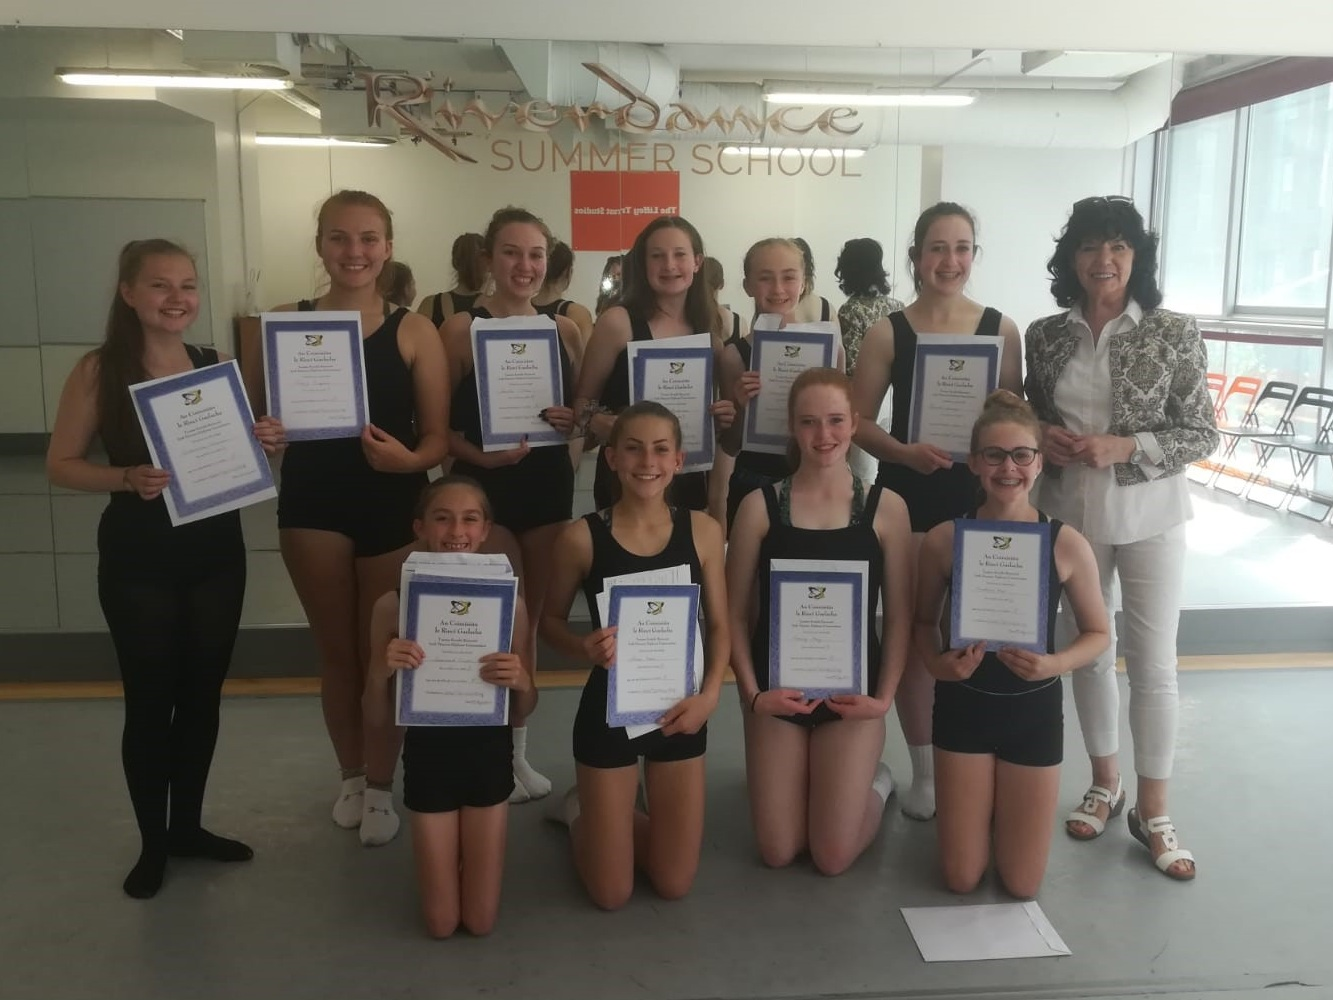 - A triumphant group of dancers over from Edmonton, Canada, who have just successfully attained 1st honors in their grade exams this week after their workshop with Olive.